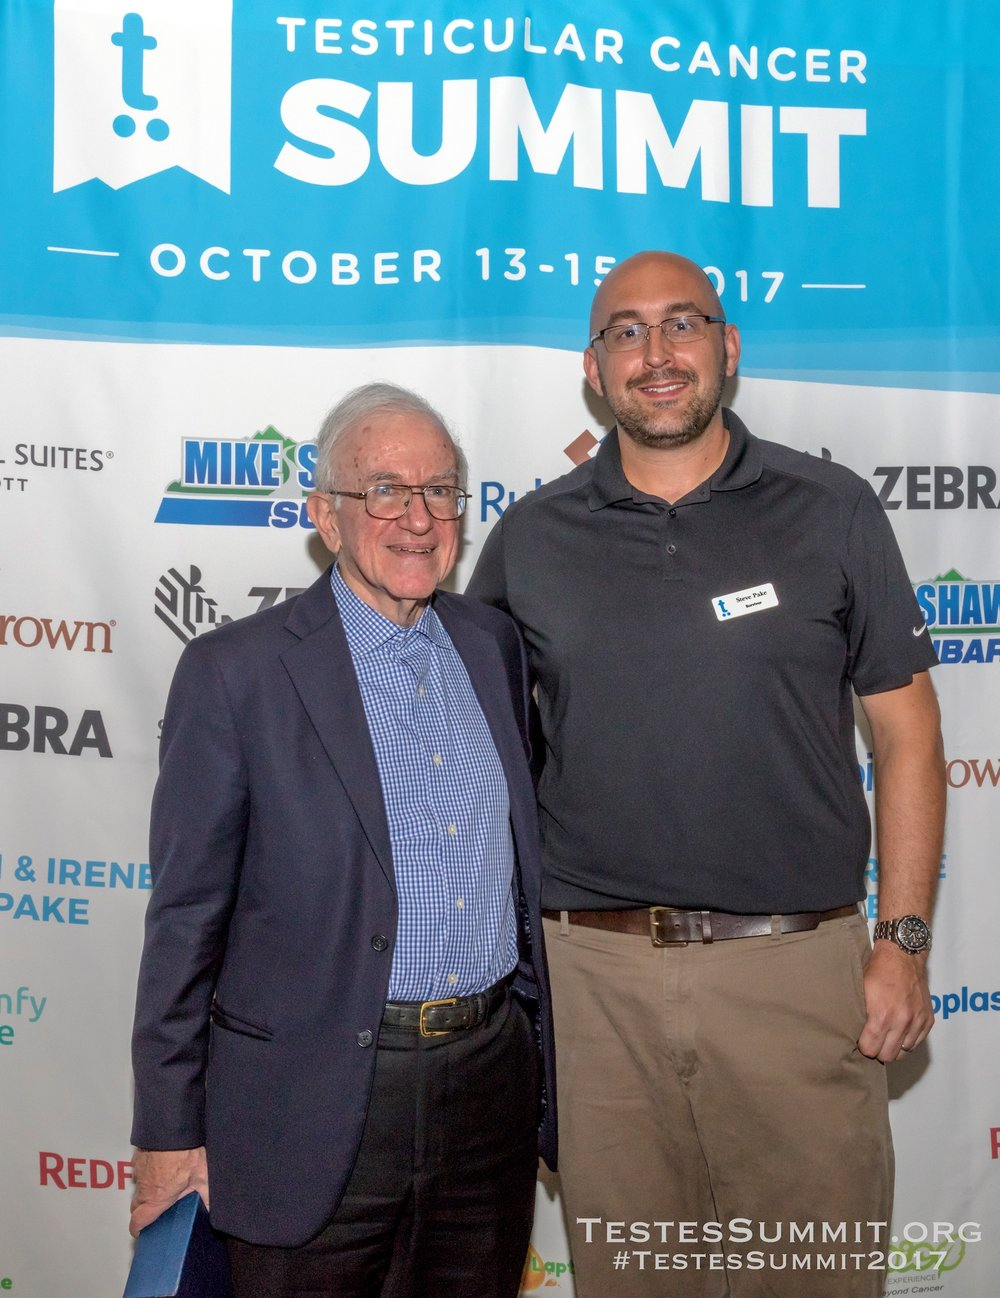 Dr Lawrence Einhorn with Testes Summit Co-Founder and Chair, Steve Pake